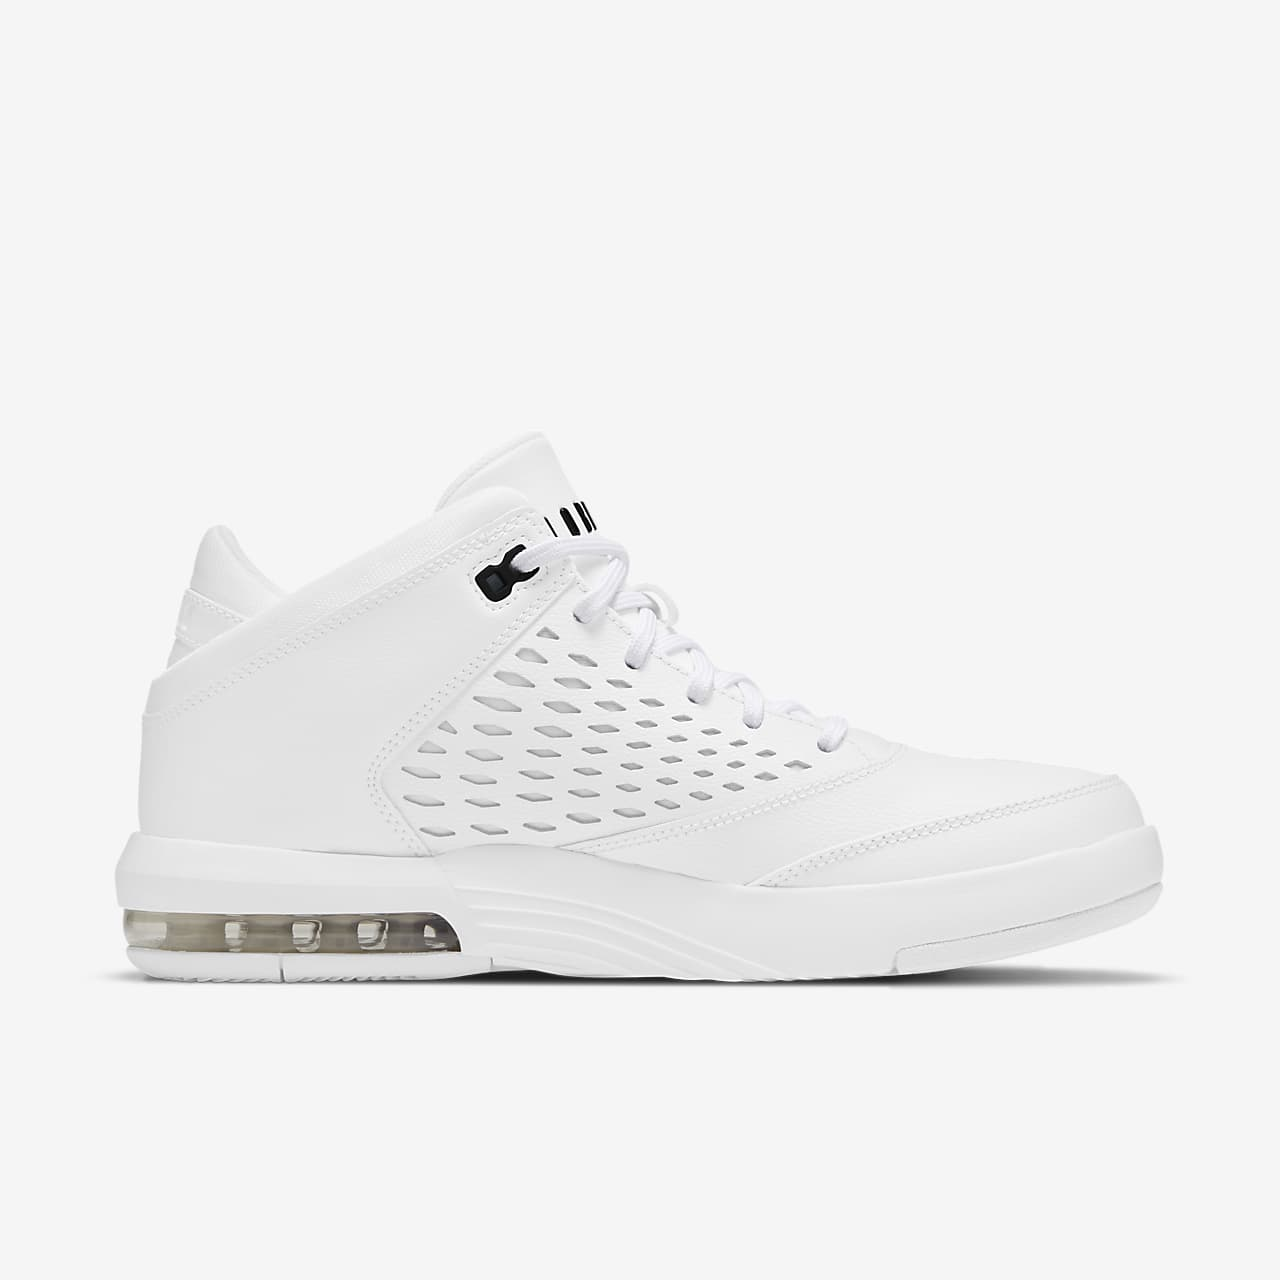 9a246583c521c4 Jordan Flight Origin 4 Men s Shoe. Nike.com NZ